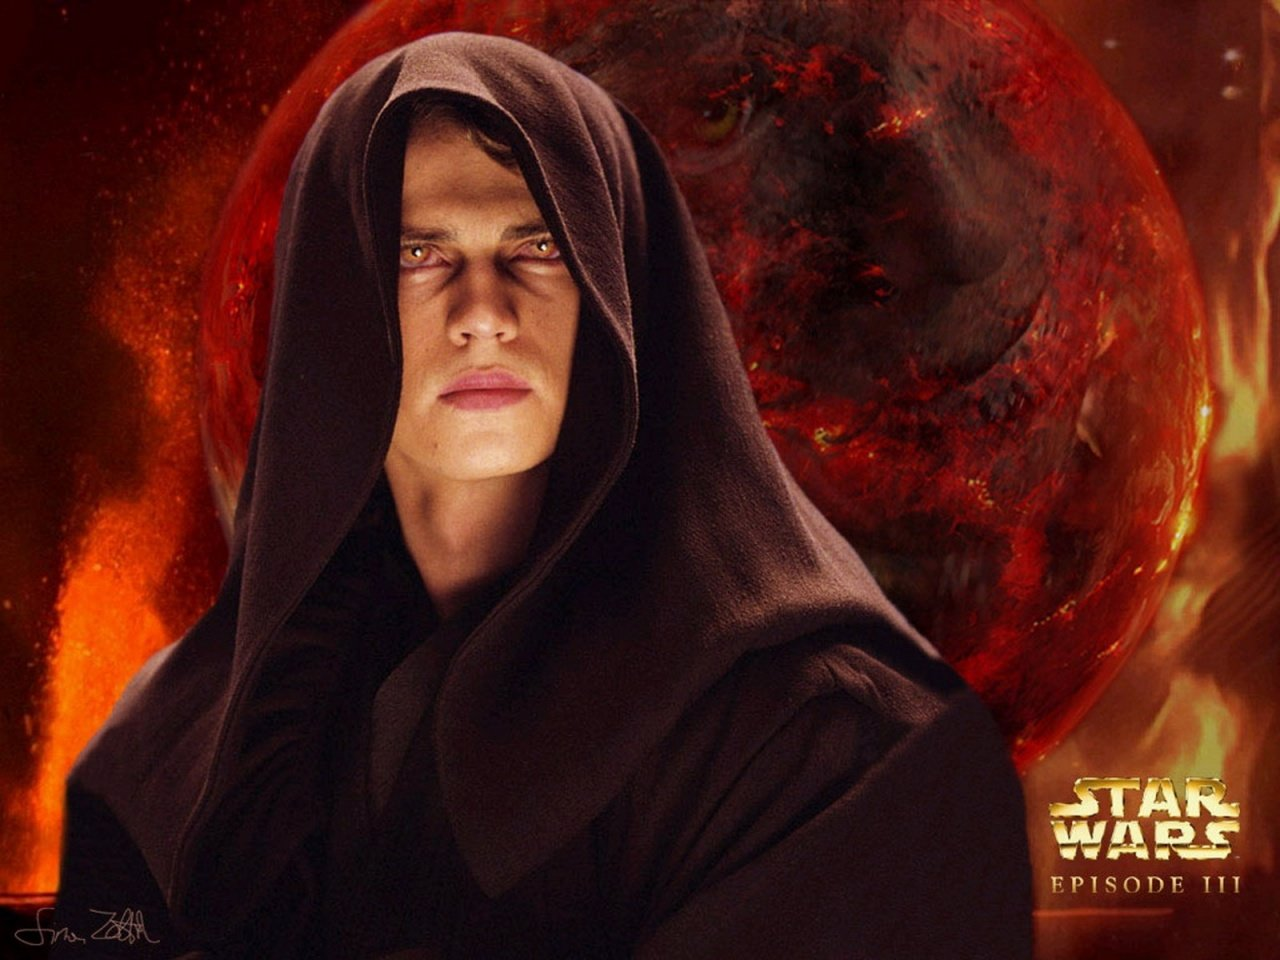 Star Wars Episode 3 Iii Revenge Of The Sith Wallpapers Hd For